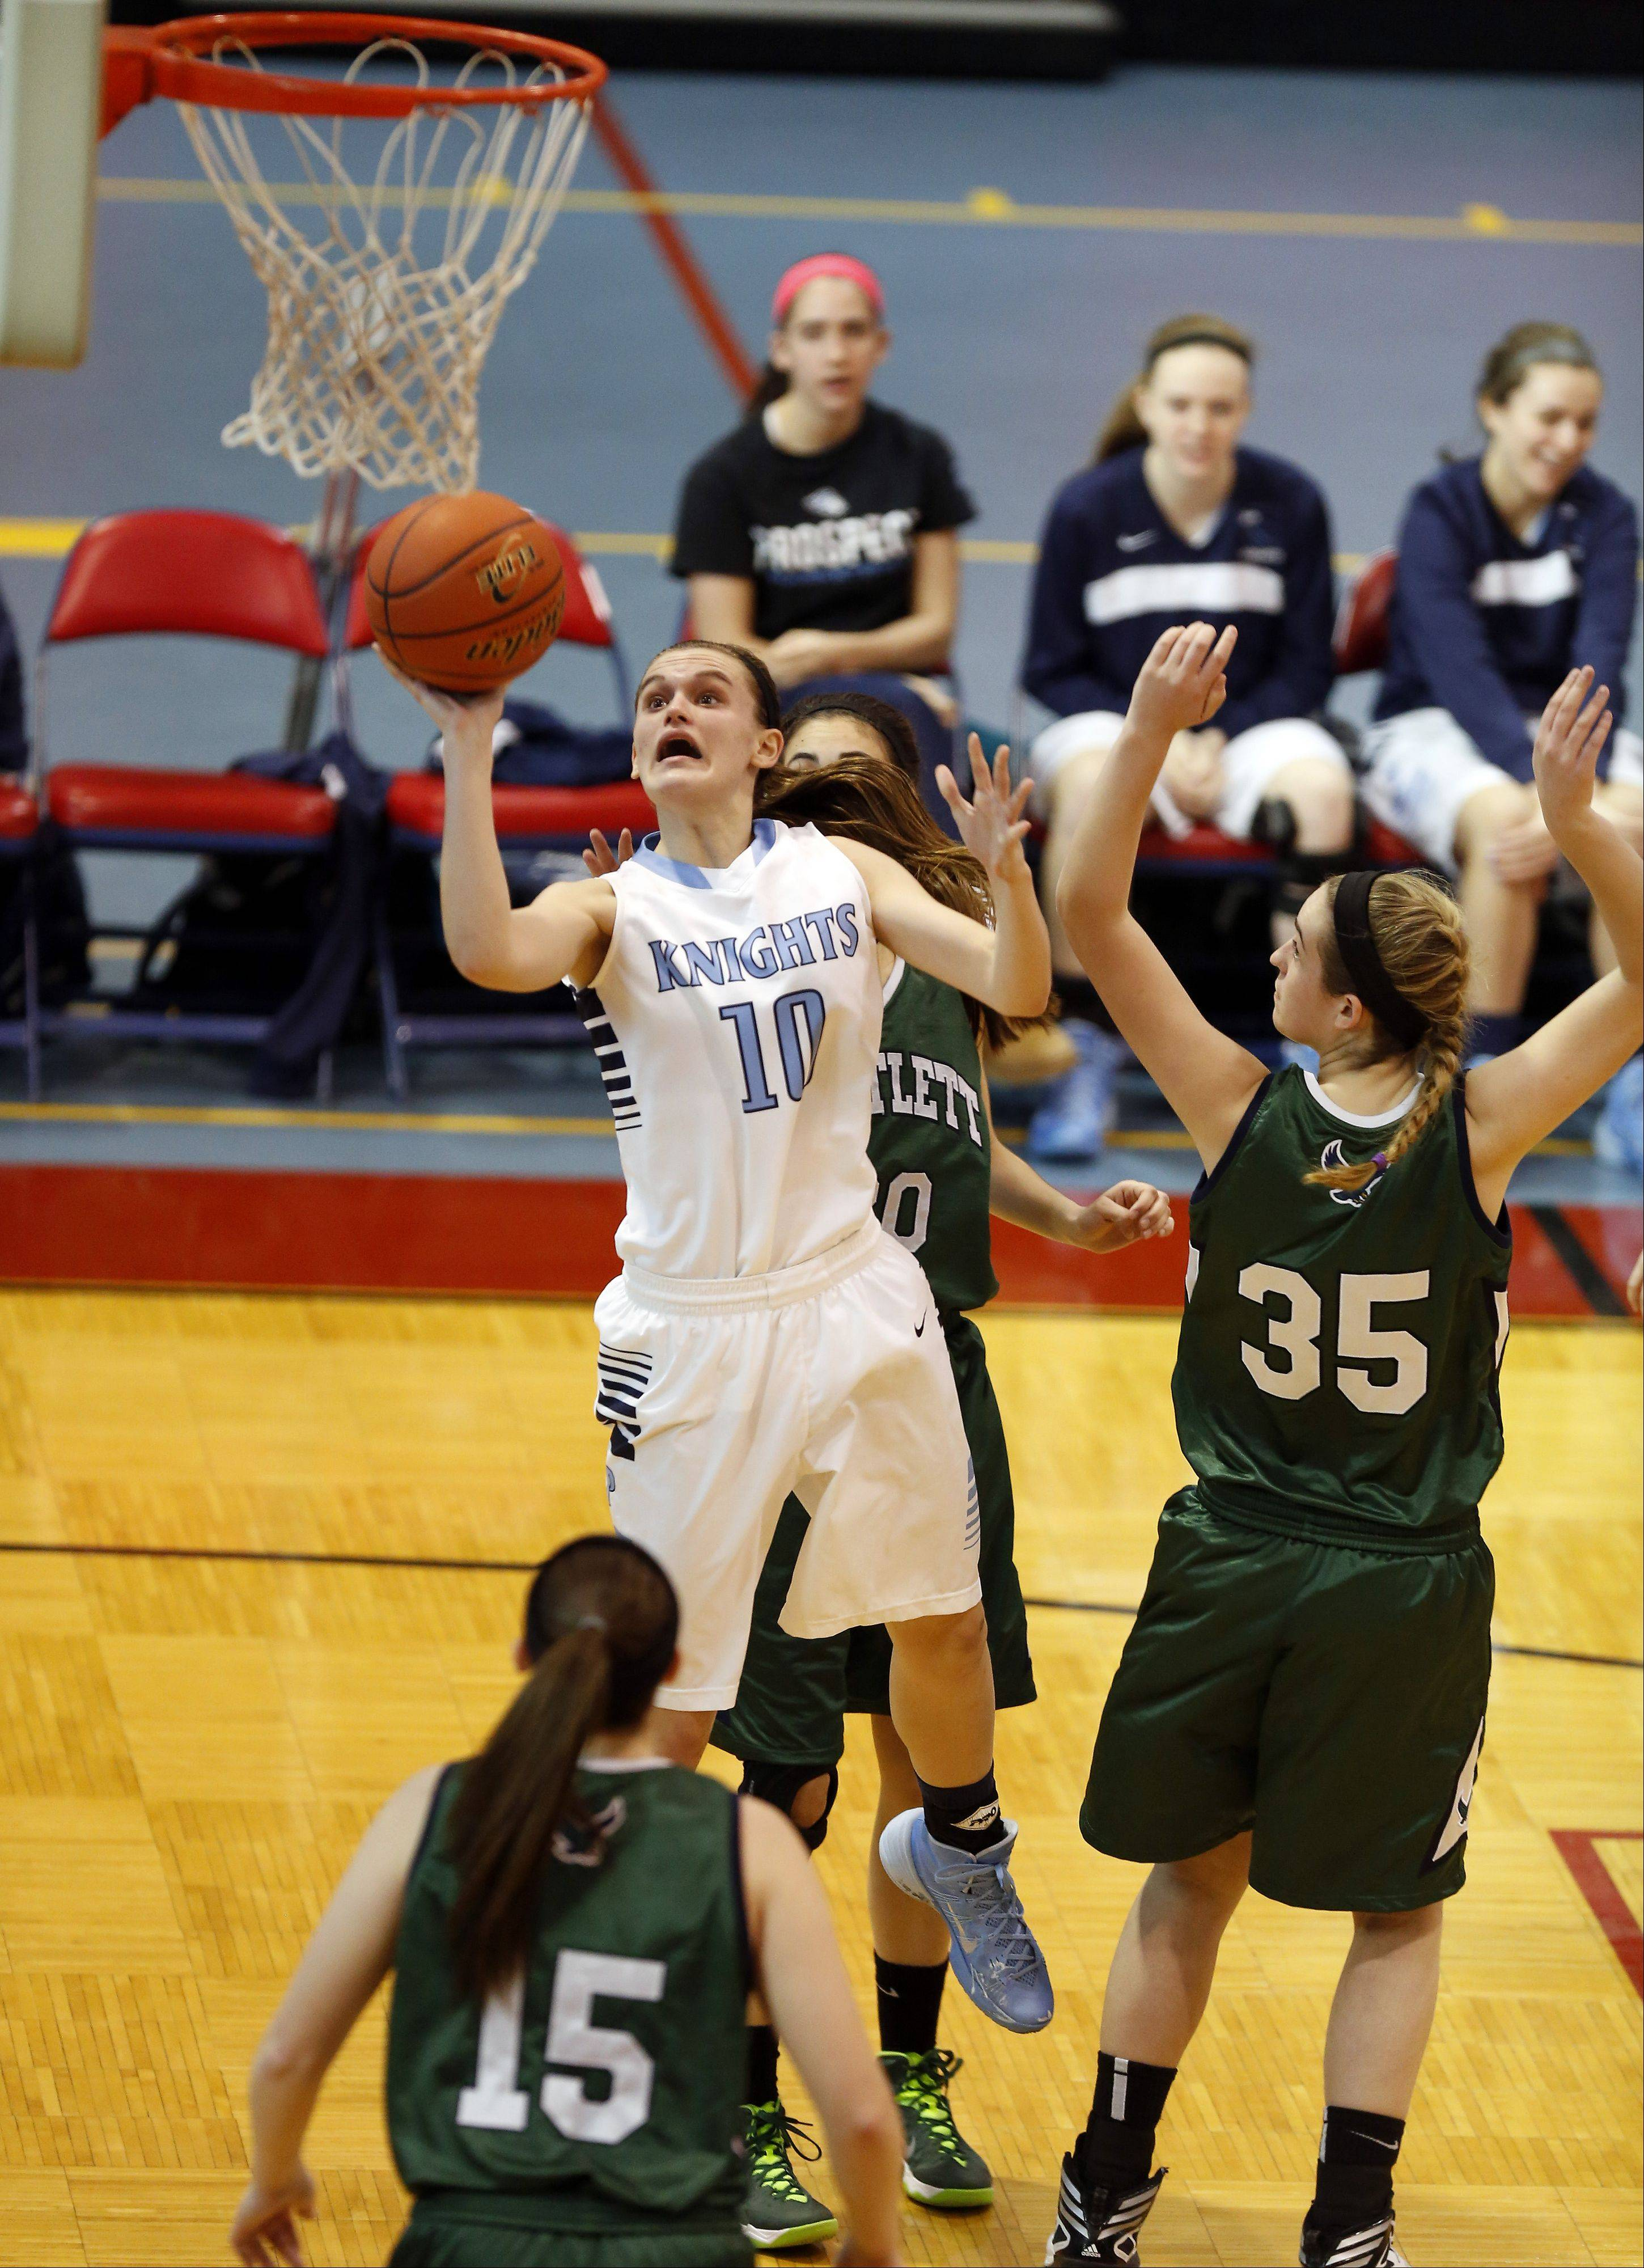 Images from the Bartlett vs. Prospect girls basketball game during the 31st Annual Charger Classic Dundee-Crown High School Girls Basketball Tournament Thursday December 26, 2013 in Carpentersville.